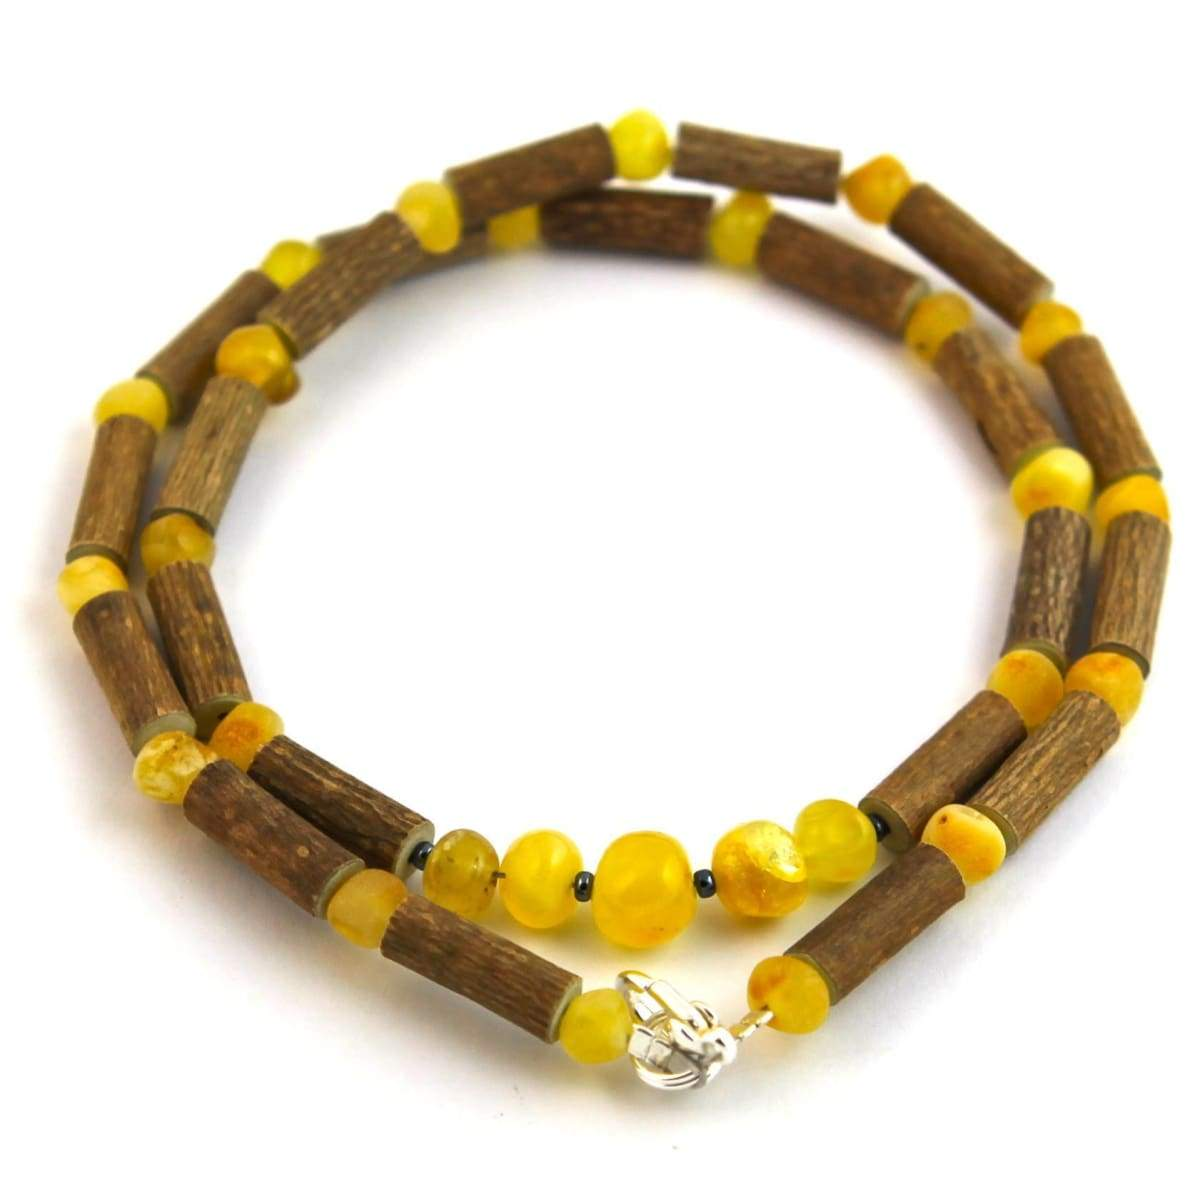 Hazel-Amber Milk & Butter - 16 Necklace - Lobster Claw Clasp - Hazelwood & Baltic Amber Jewelry